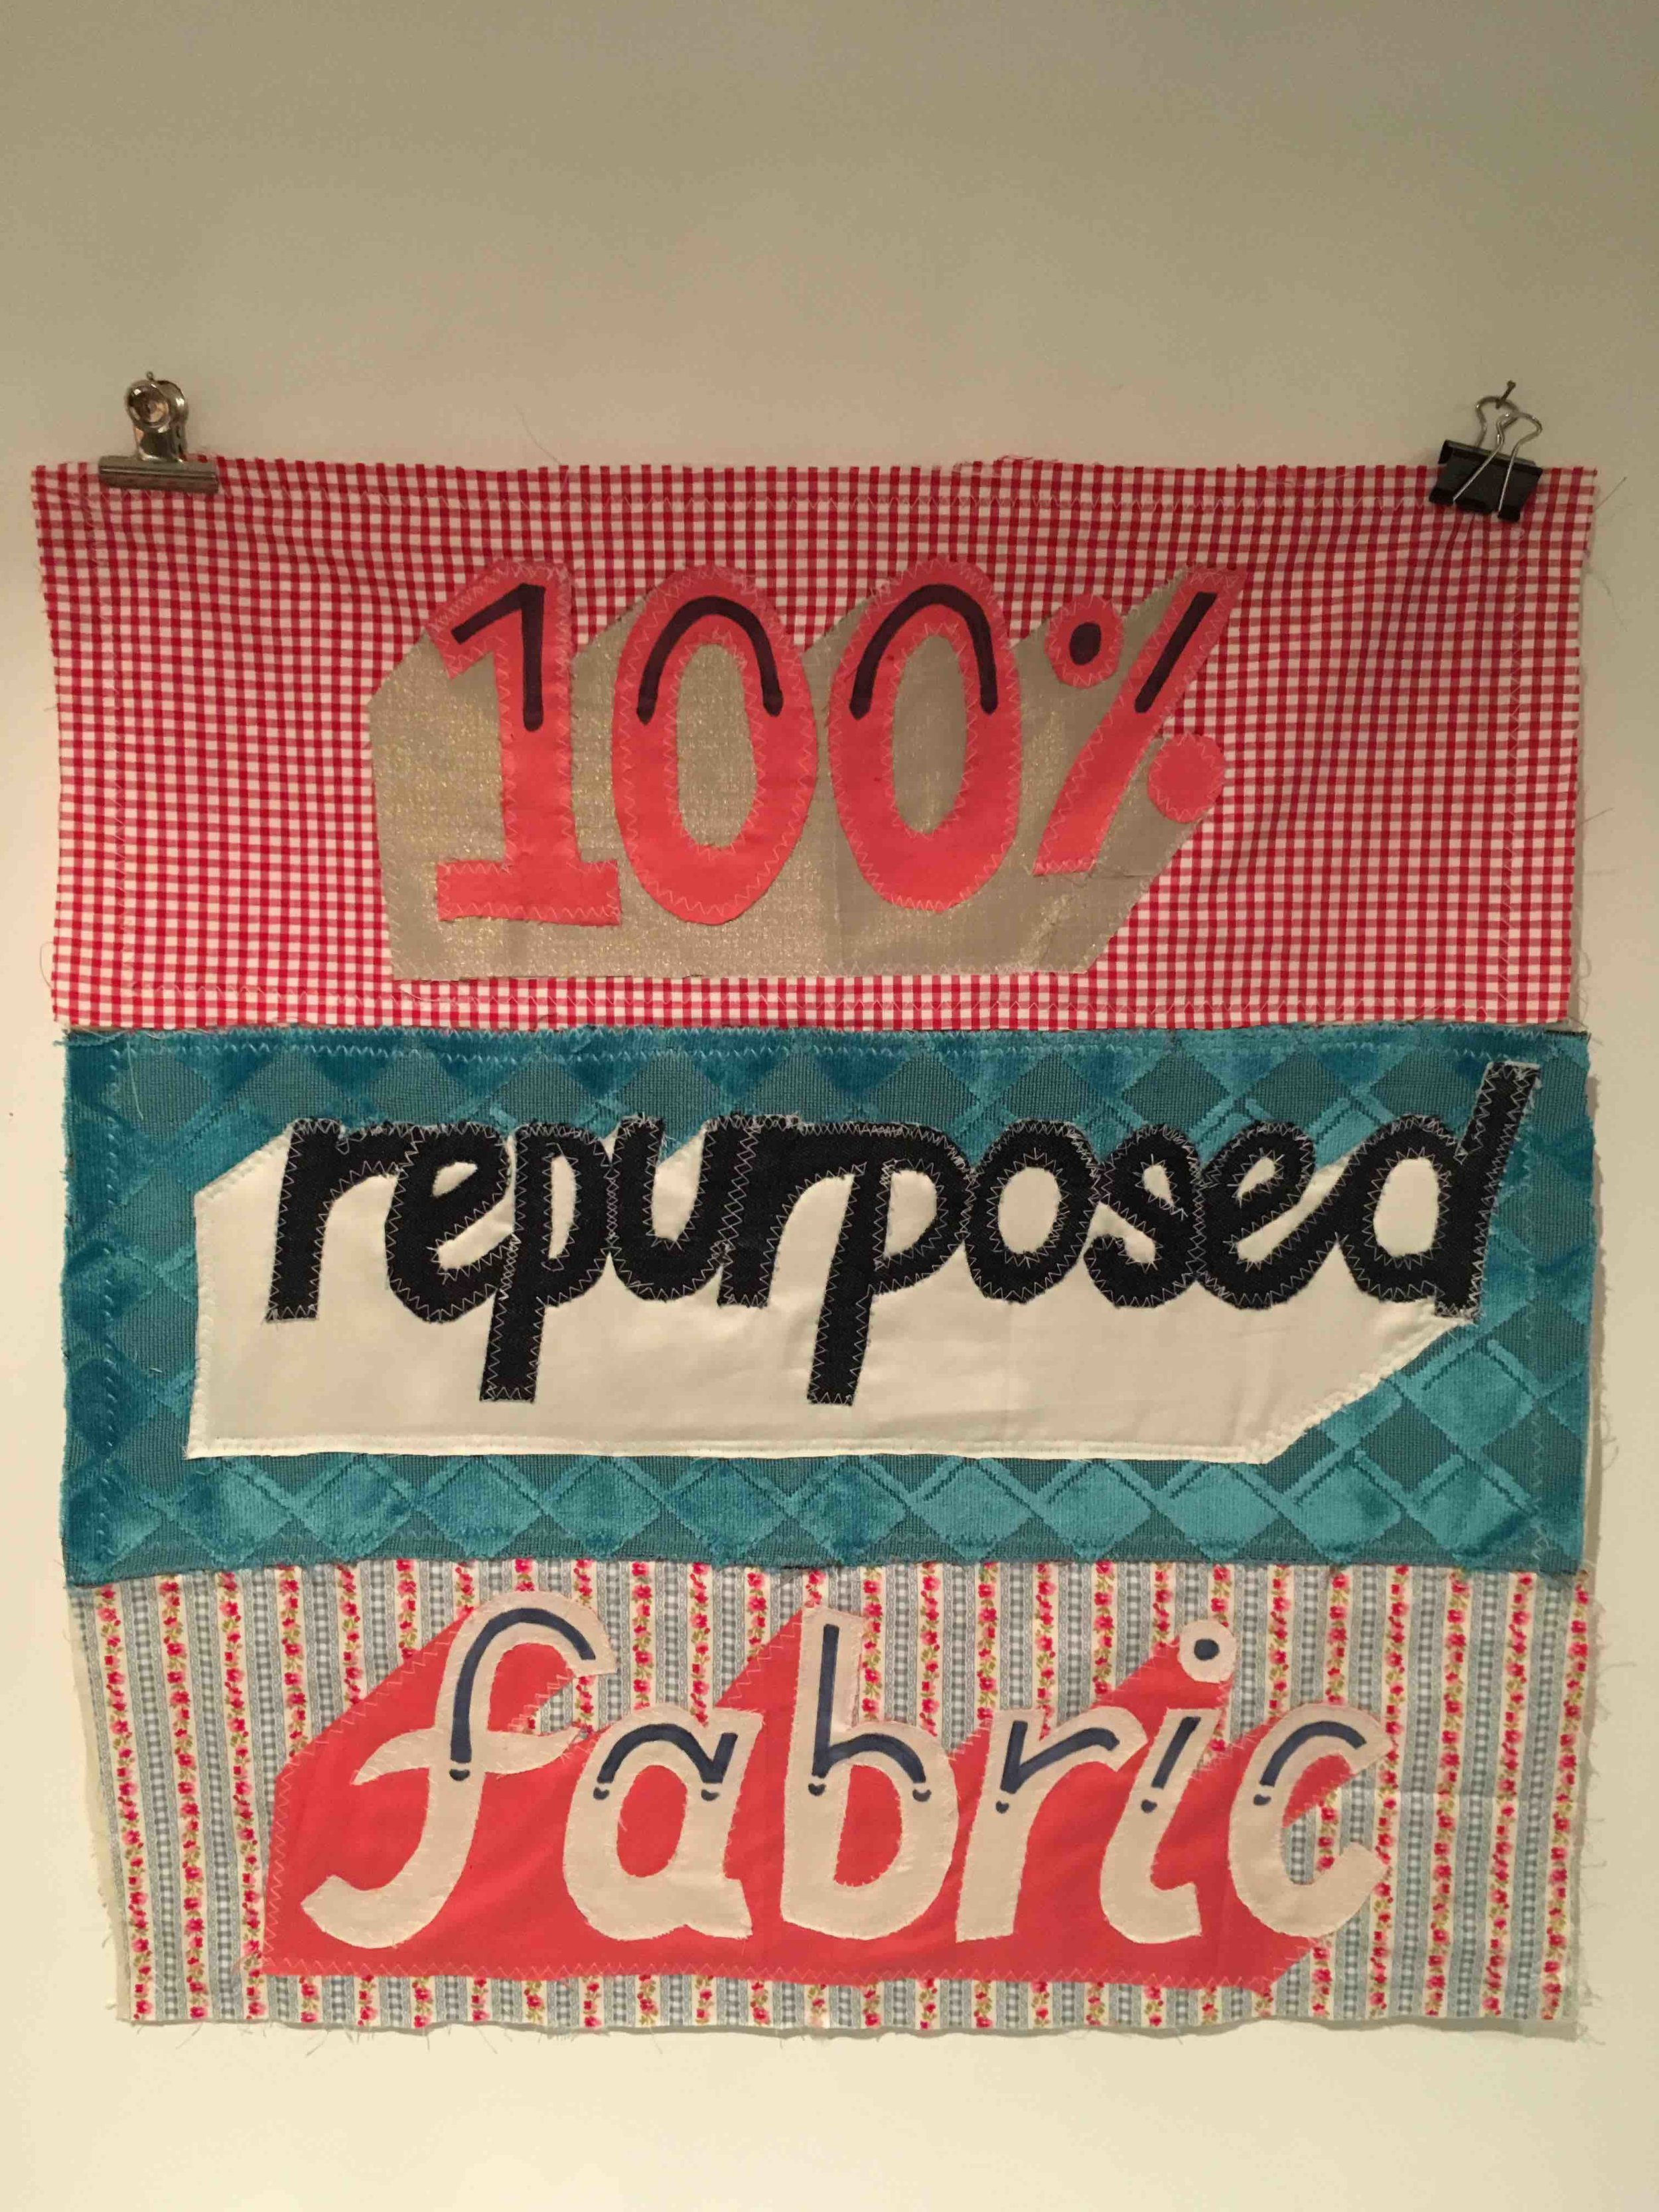 """- When we toss away fabric, we toss away the raw materials it's made from, the water that goes into washing, the toxins that go into treating it and the energy that go into manufacture. It's no accident that fashion is the world's second most polluting industry. Reducing CO2 emissions is built into the essence of FRP and, by extension, Rummage & Bolt. """"You don't equate fabric with CO2 emissions,"""" admits Hannah. """"But the data, when it's in black and white, is shocking."""" Waste fabrics come from a variety of sources, including theatre and fashion production companies. The first donation came from Cheekyhandmades, which runs sewing workshops. """"They donated 13 bolts and one bag of scraps, almost 84kg of fabric,"""" says Hannah. """"This amount diverted from landfill saved 357.42 lbs of CO2 emissions."""""""